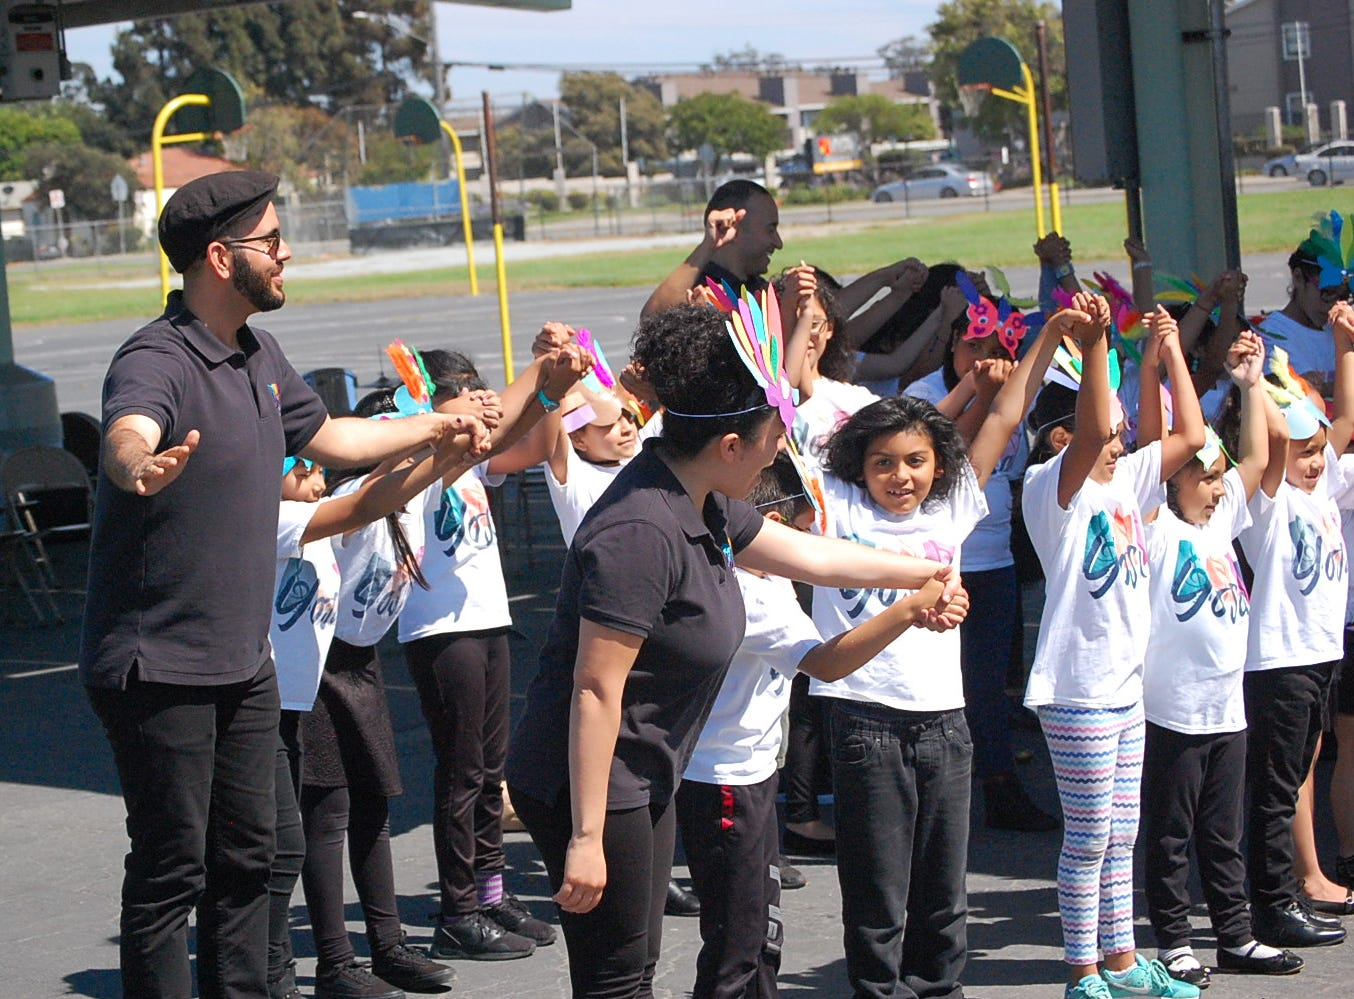 Students, ranging from kindergarten through high school, played instruments in between carnival-inspired games and barbecue on July 25 in the second annual YOSAL Palooza.